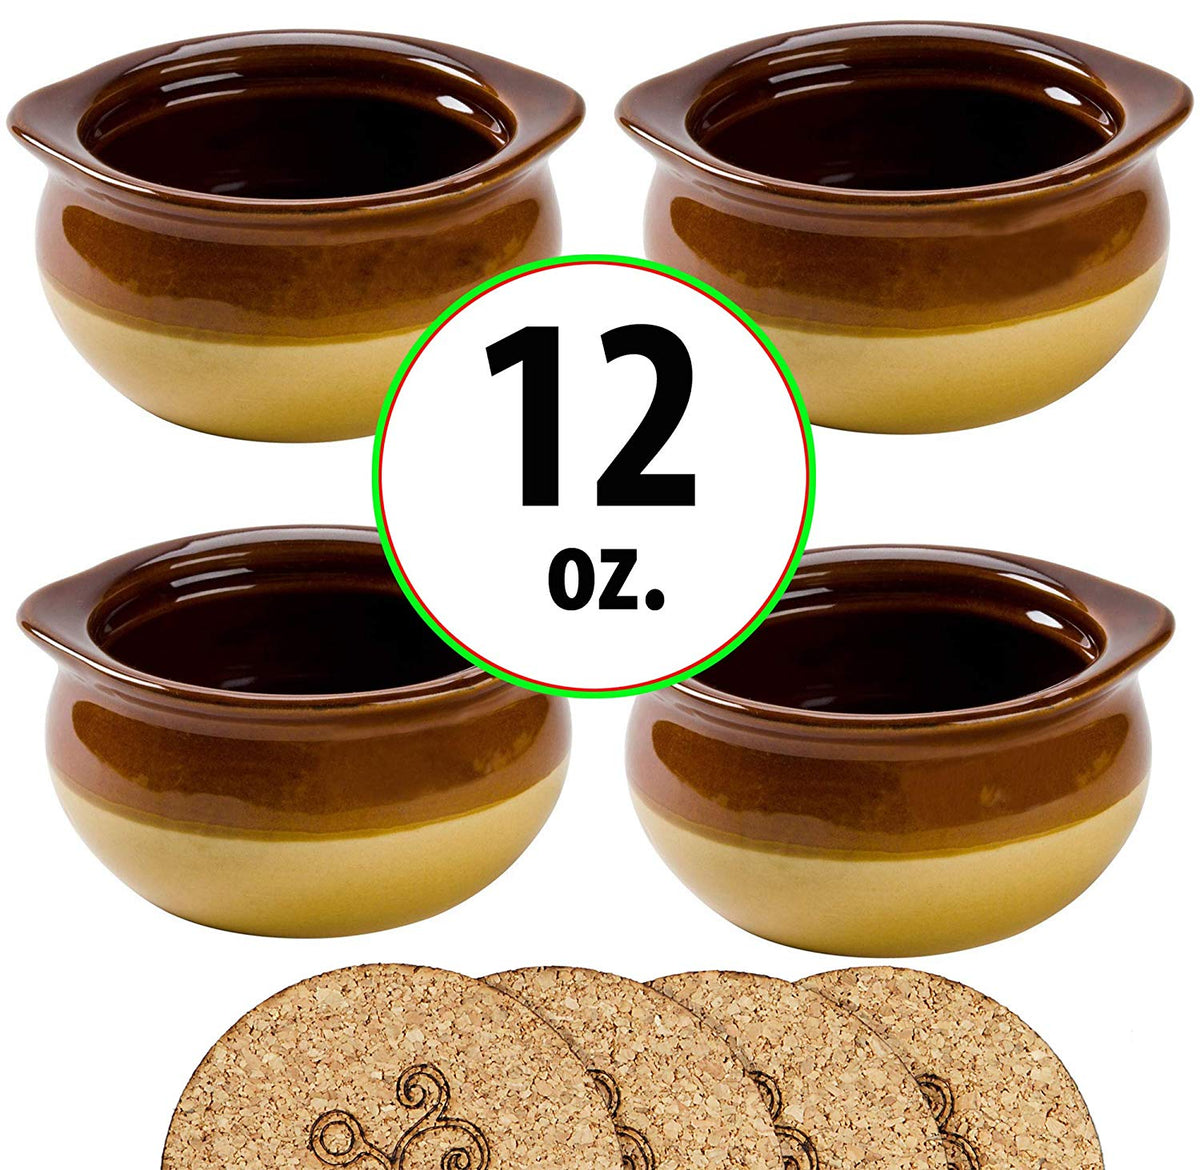 12 Ounce Onion Soup Bowls - Brown and Ivory - Set of 4 Crocks with Cork Coasters